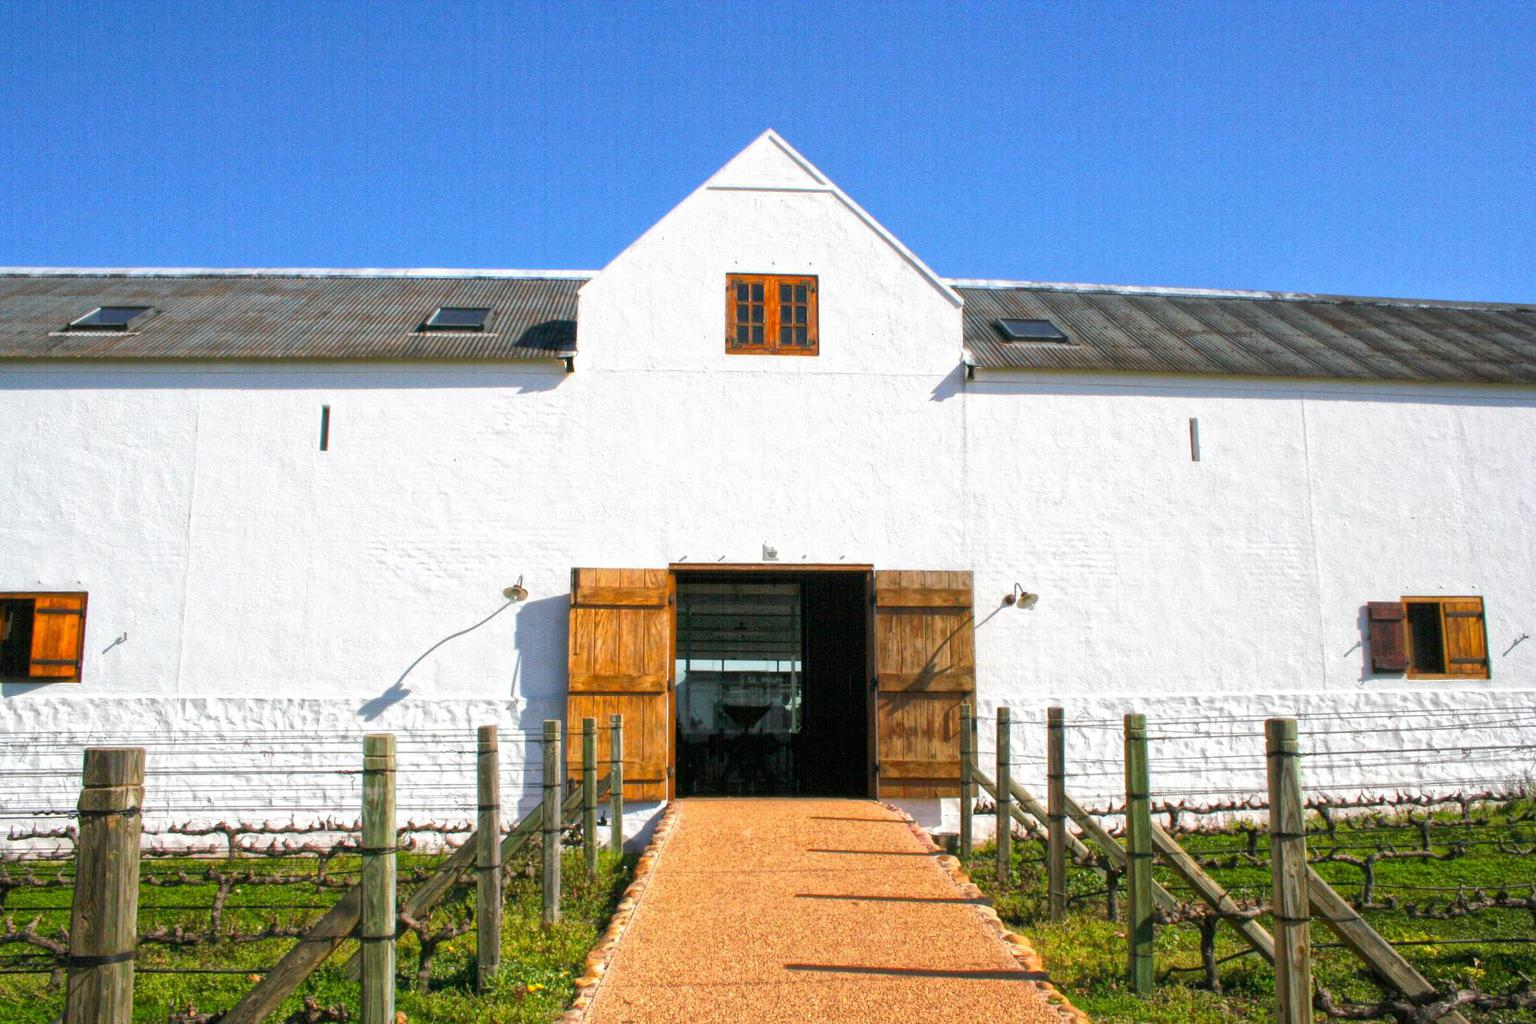 The tasting room entrance at Babylonstoren